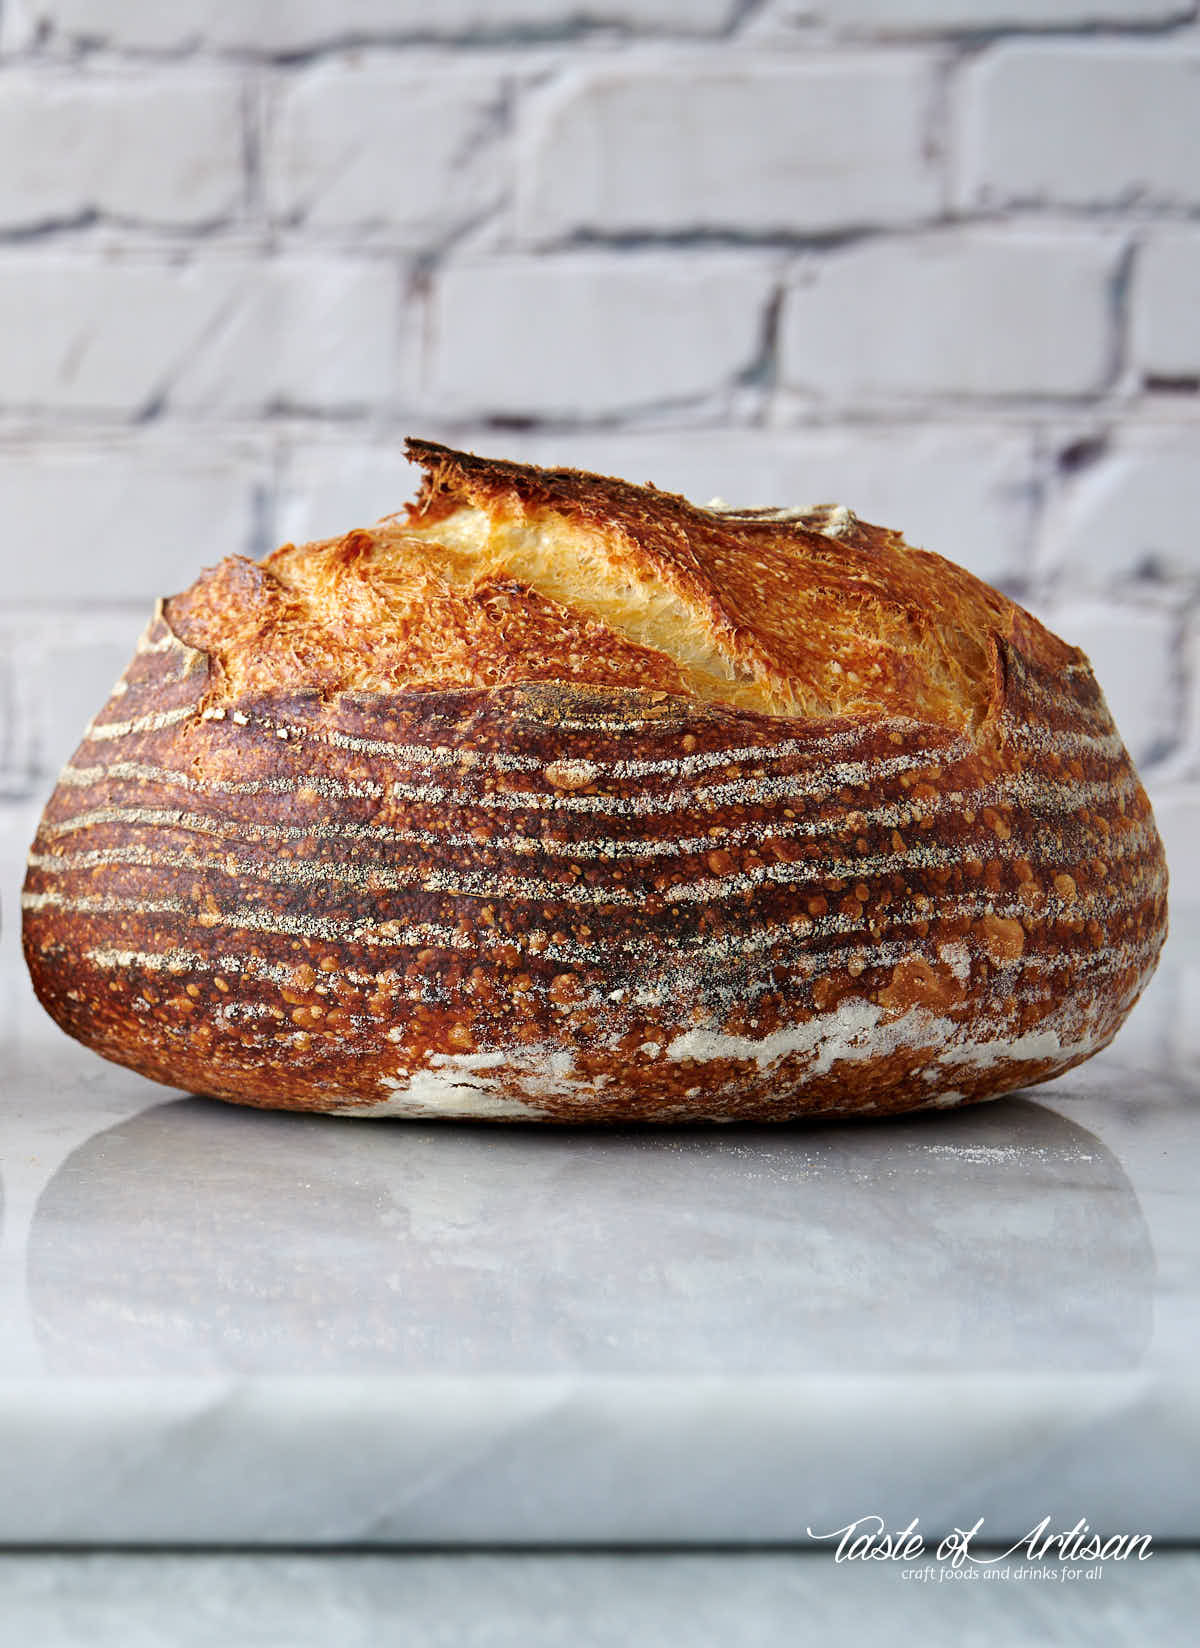 Whole no-knead sourdough bread on a marble slab.